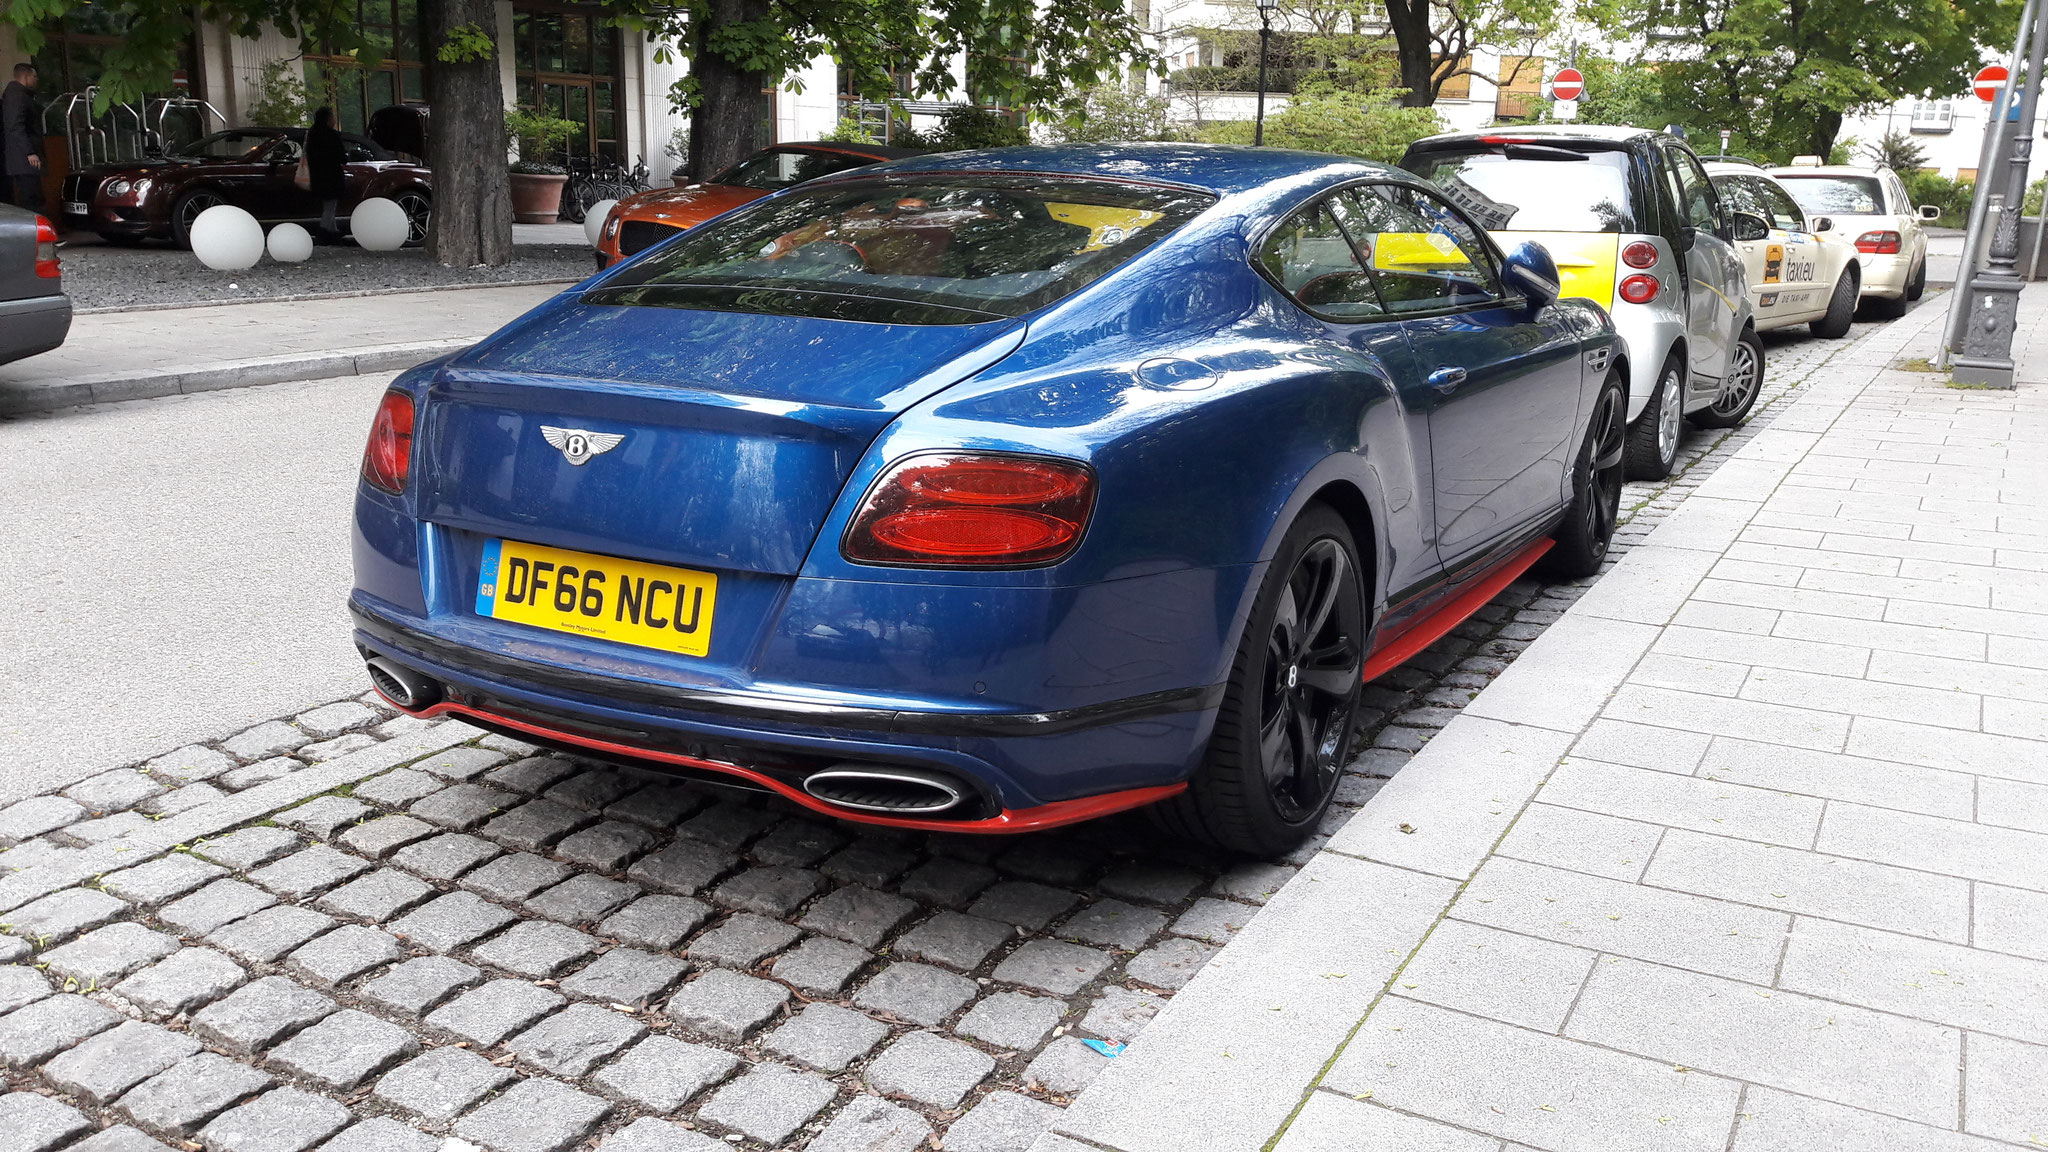 Bentley Continental GT Speed - DF66-NCU